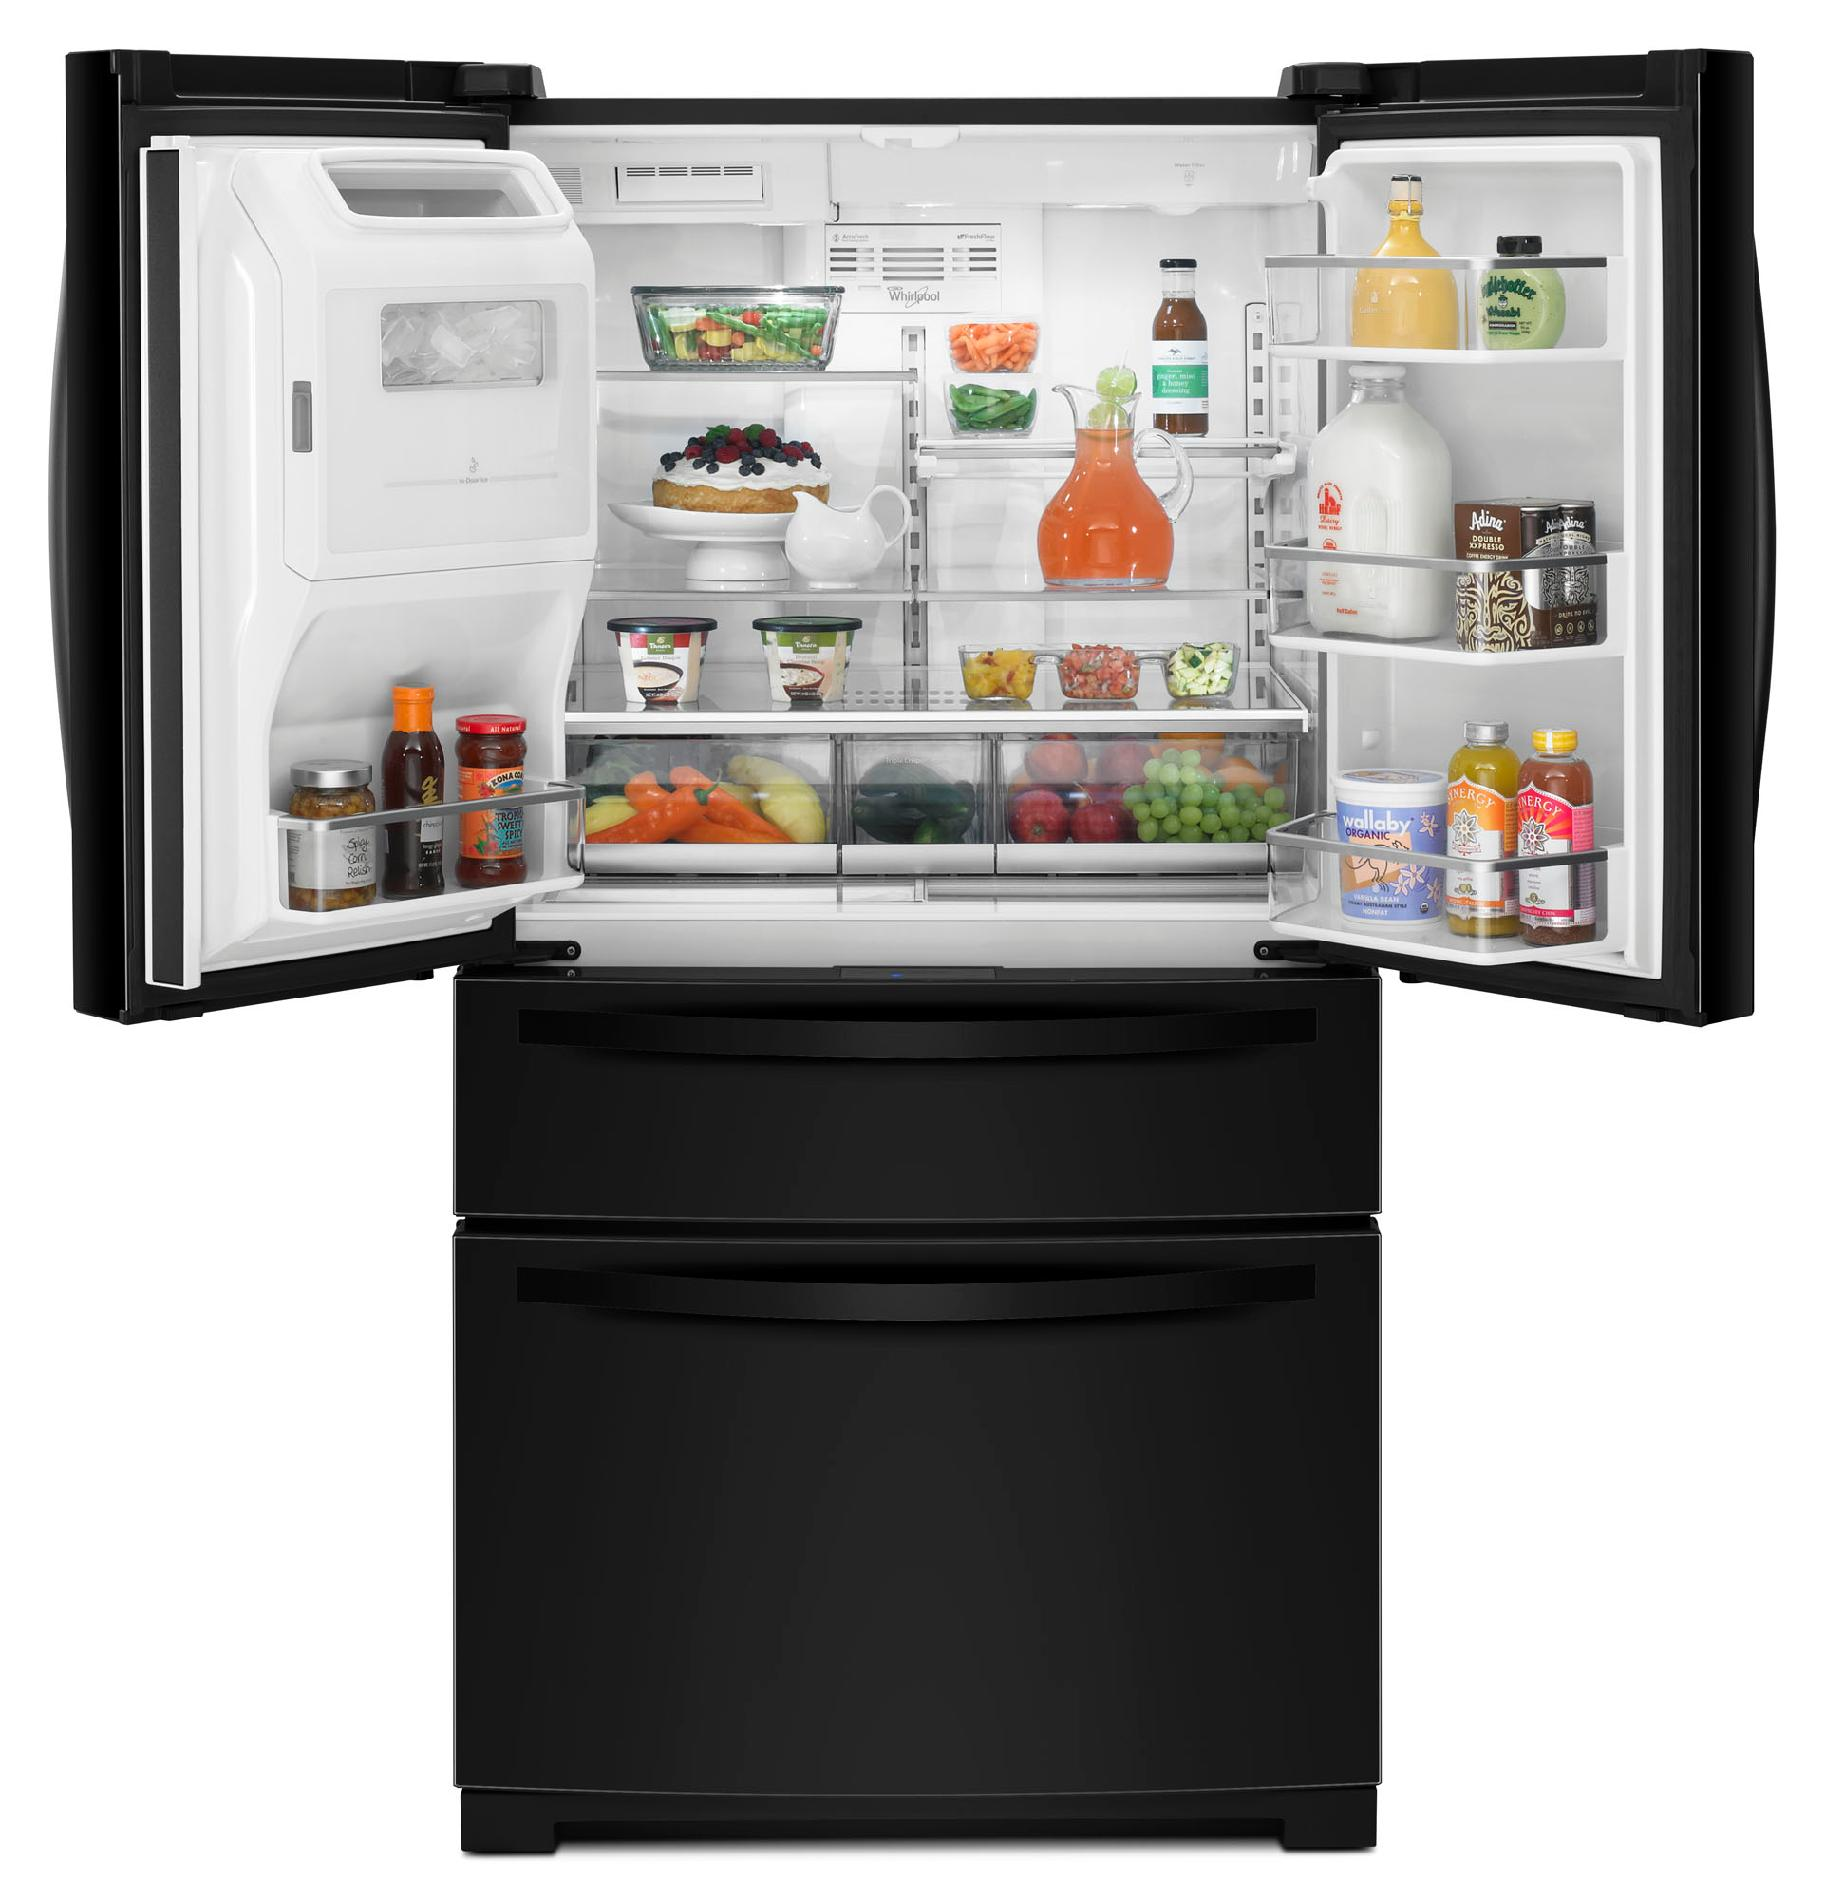 Whirlpool 28.1 cu. ft. French Door Refrigerator w/ Most Flexible Storage - Black